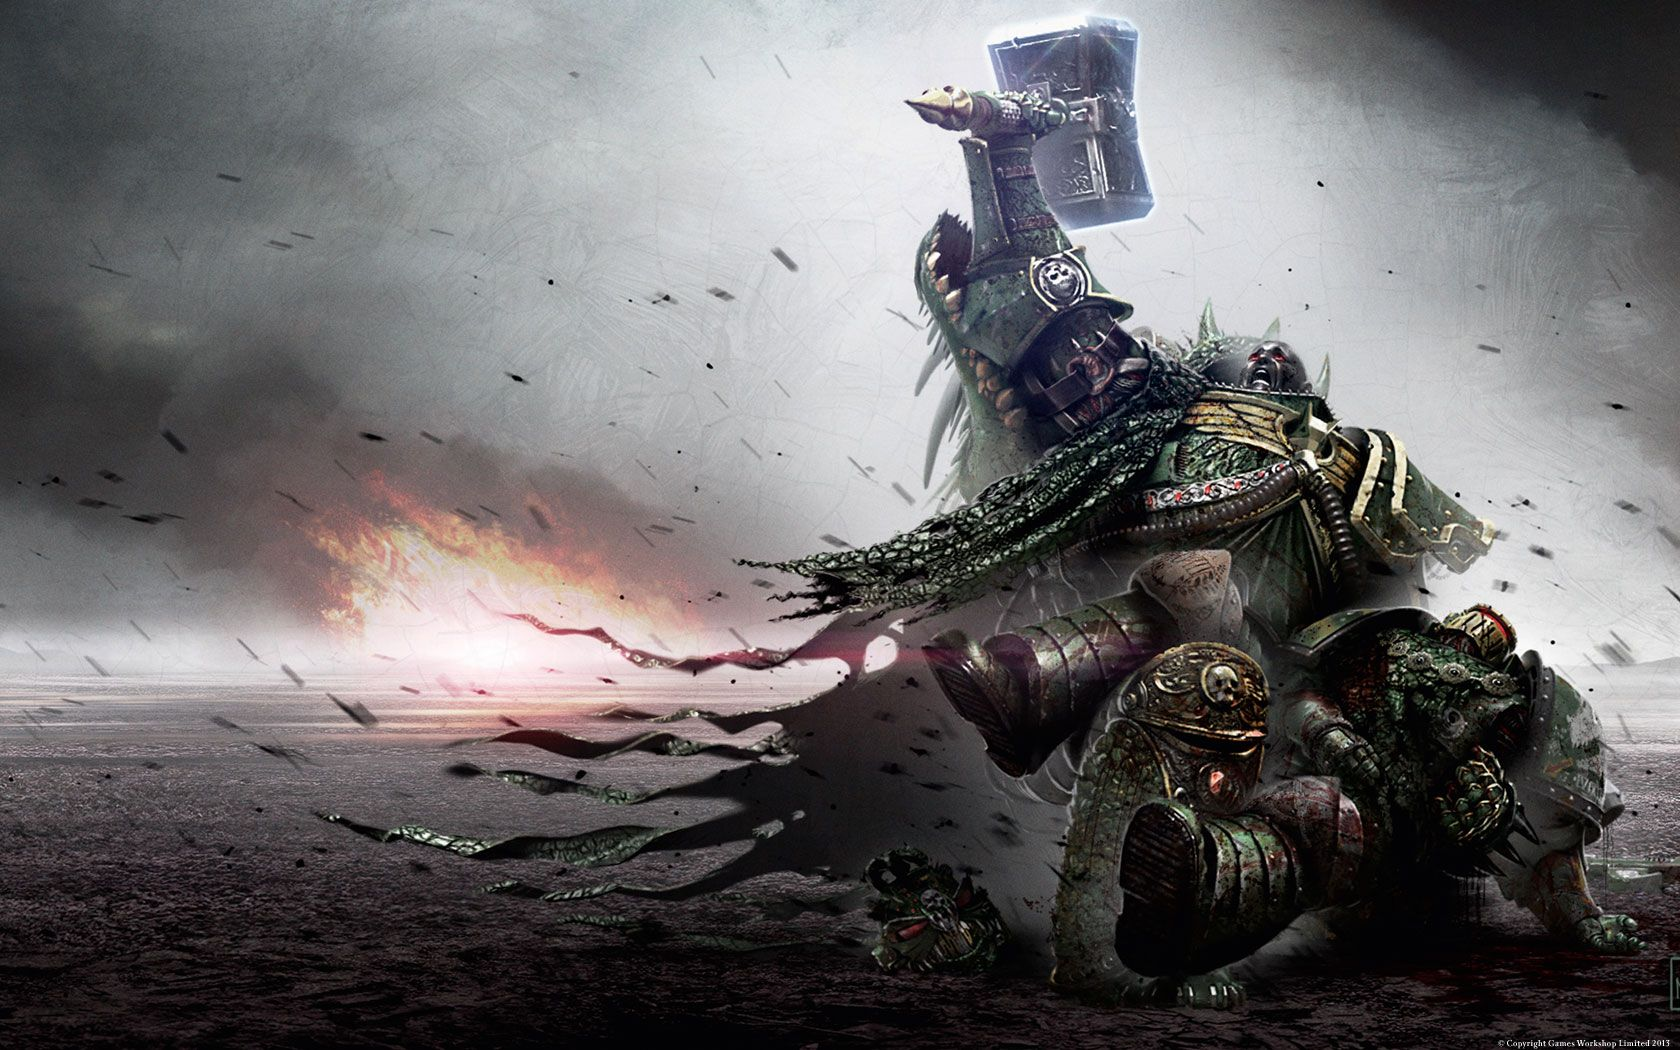 Vulkan cries over death of MK II armor